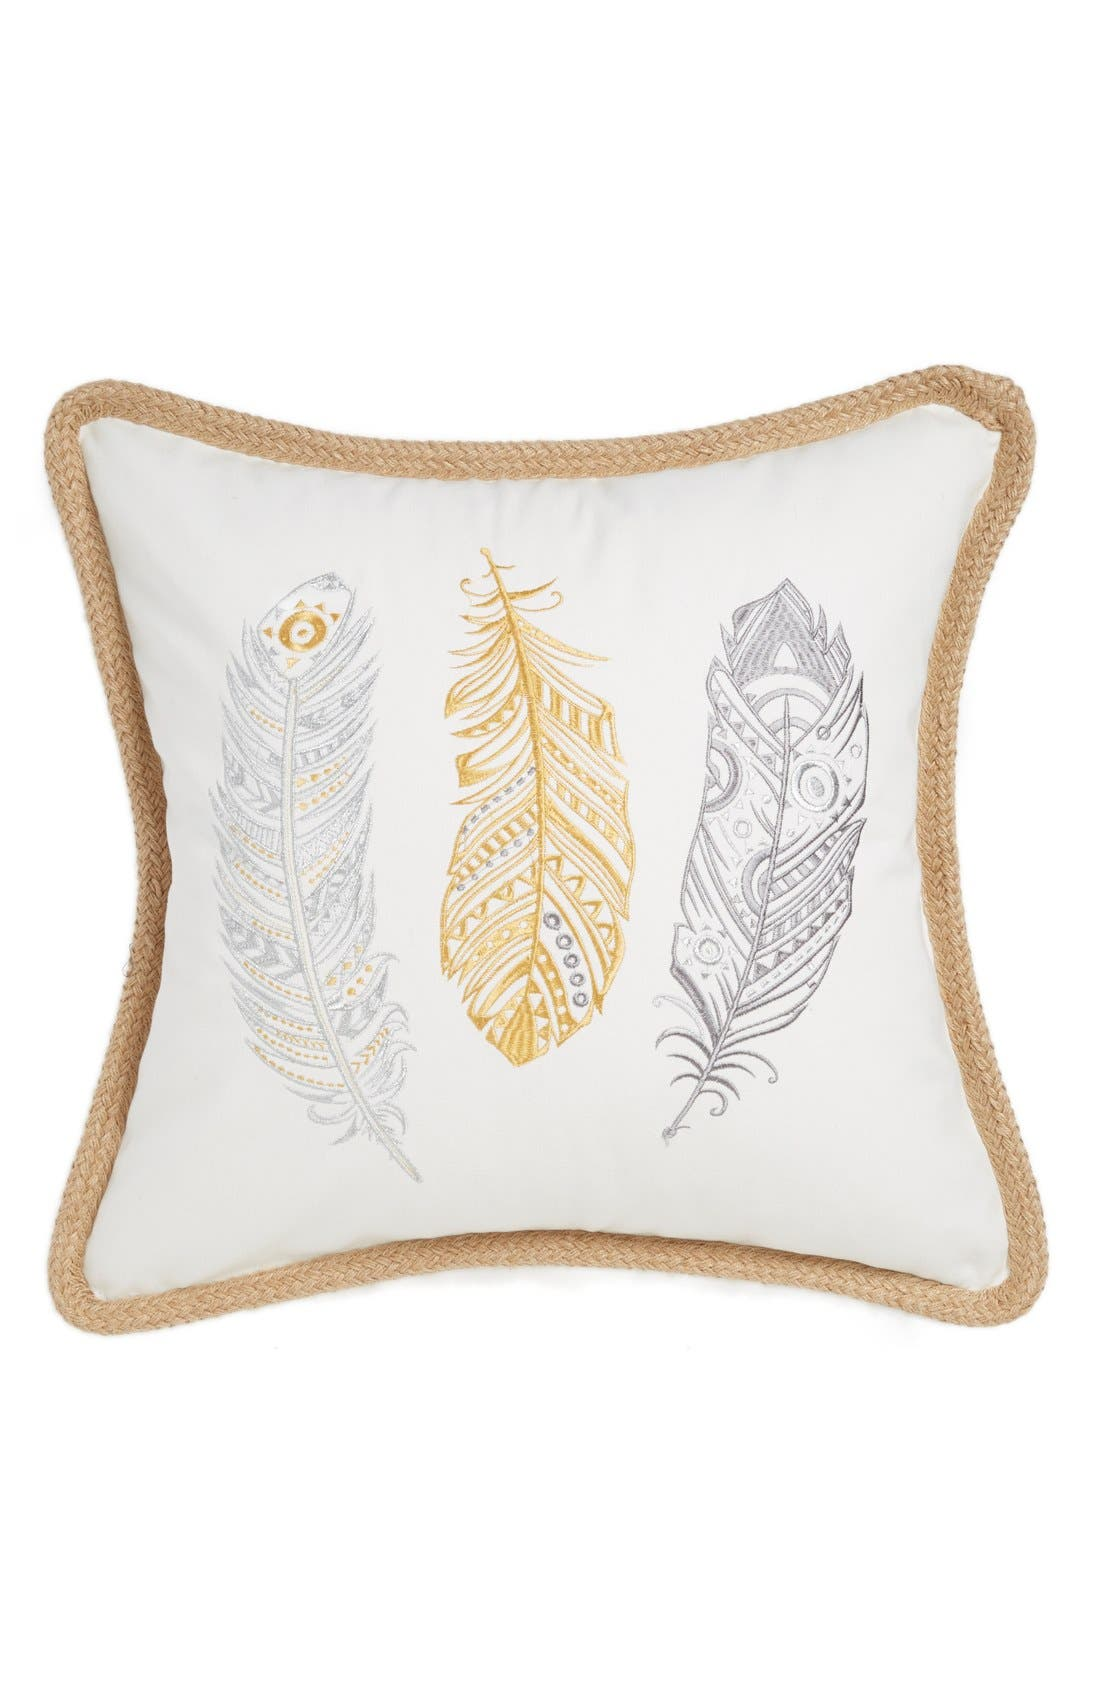 Alternate Image 1 Selected - Levtex Feather Embroidered Pillow